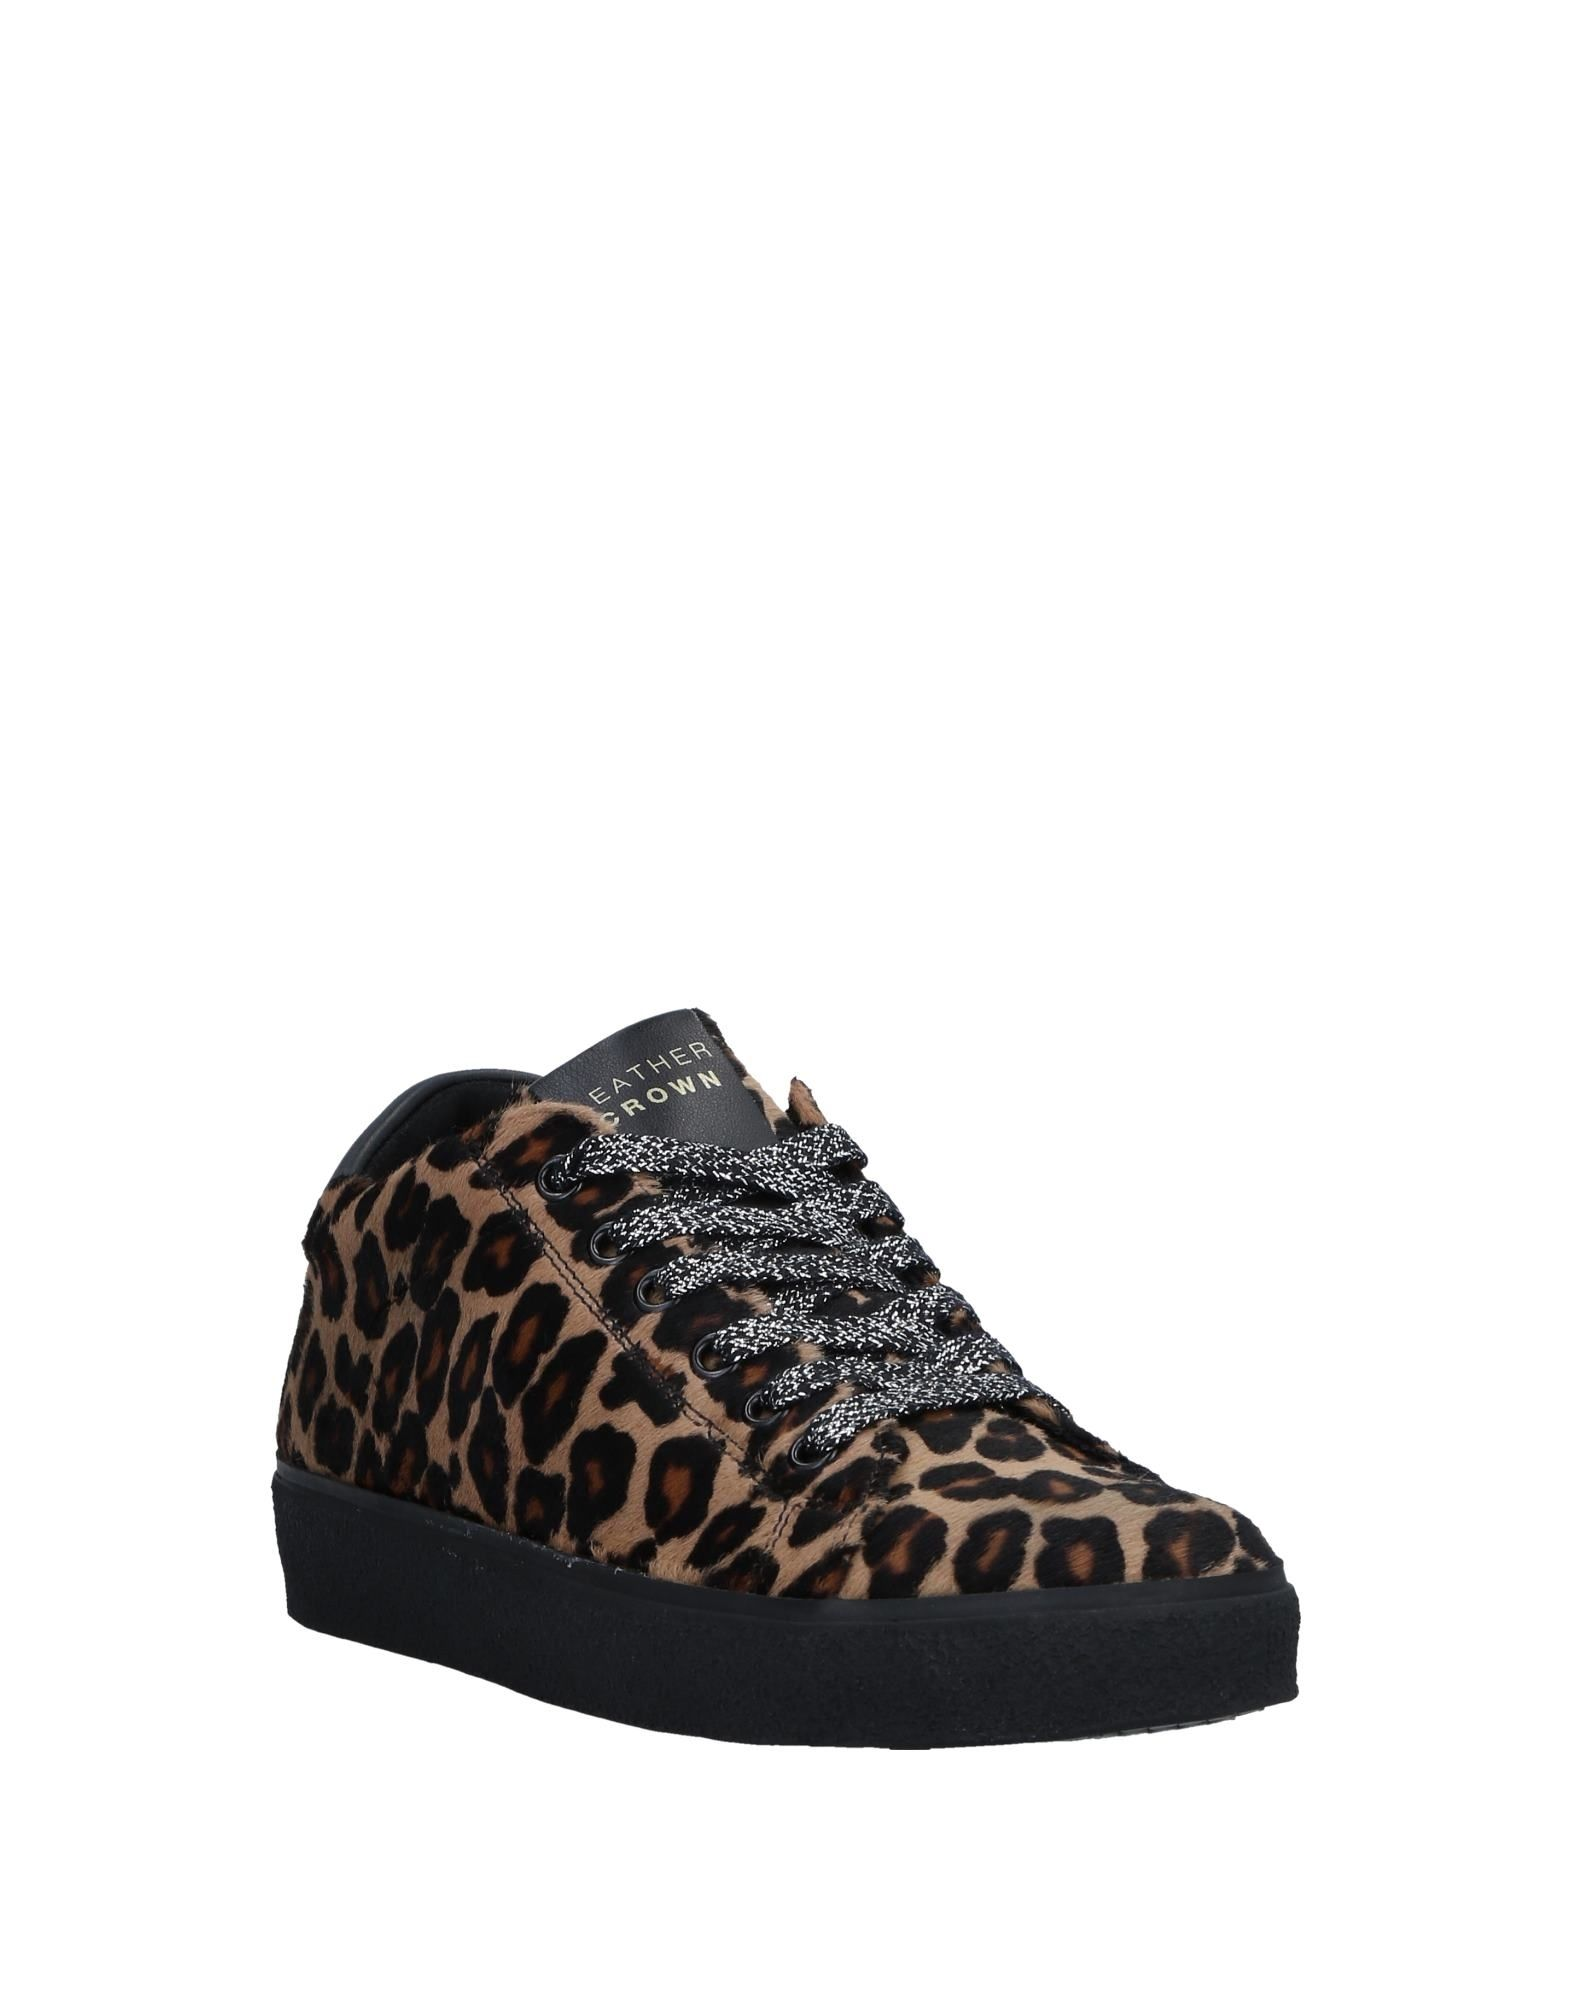 Leather Crown Sneakers strapazierfähige Damen  11533461JVGut aussehende strapazierfähige Sneakers Schuhe 05e2fc